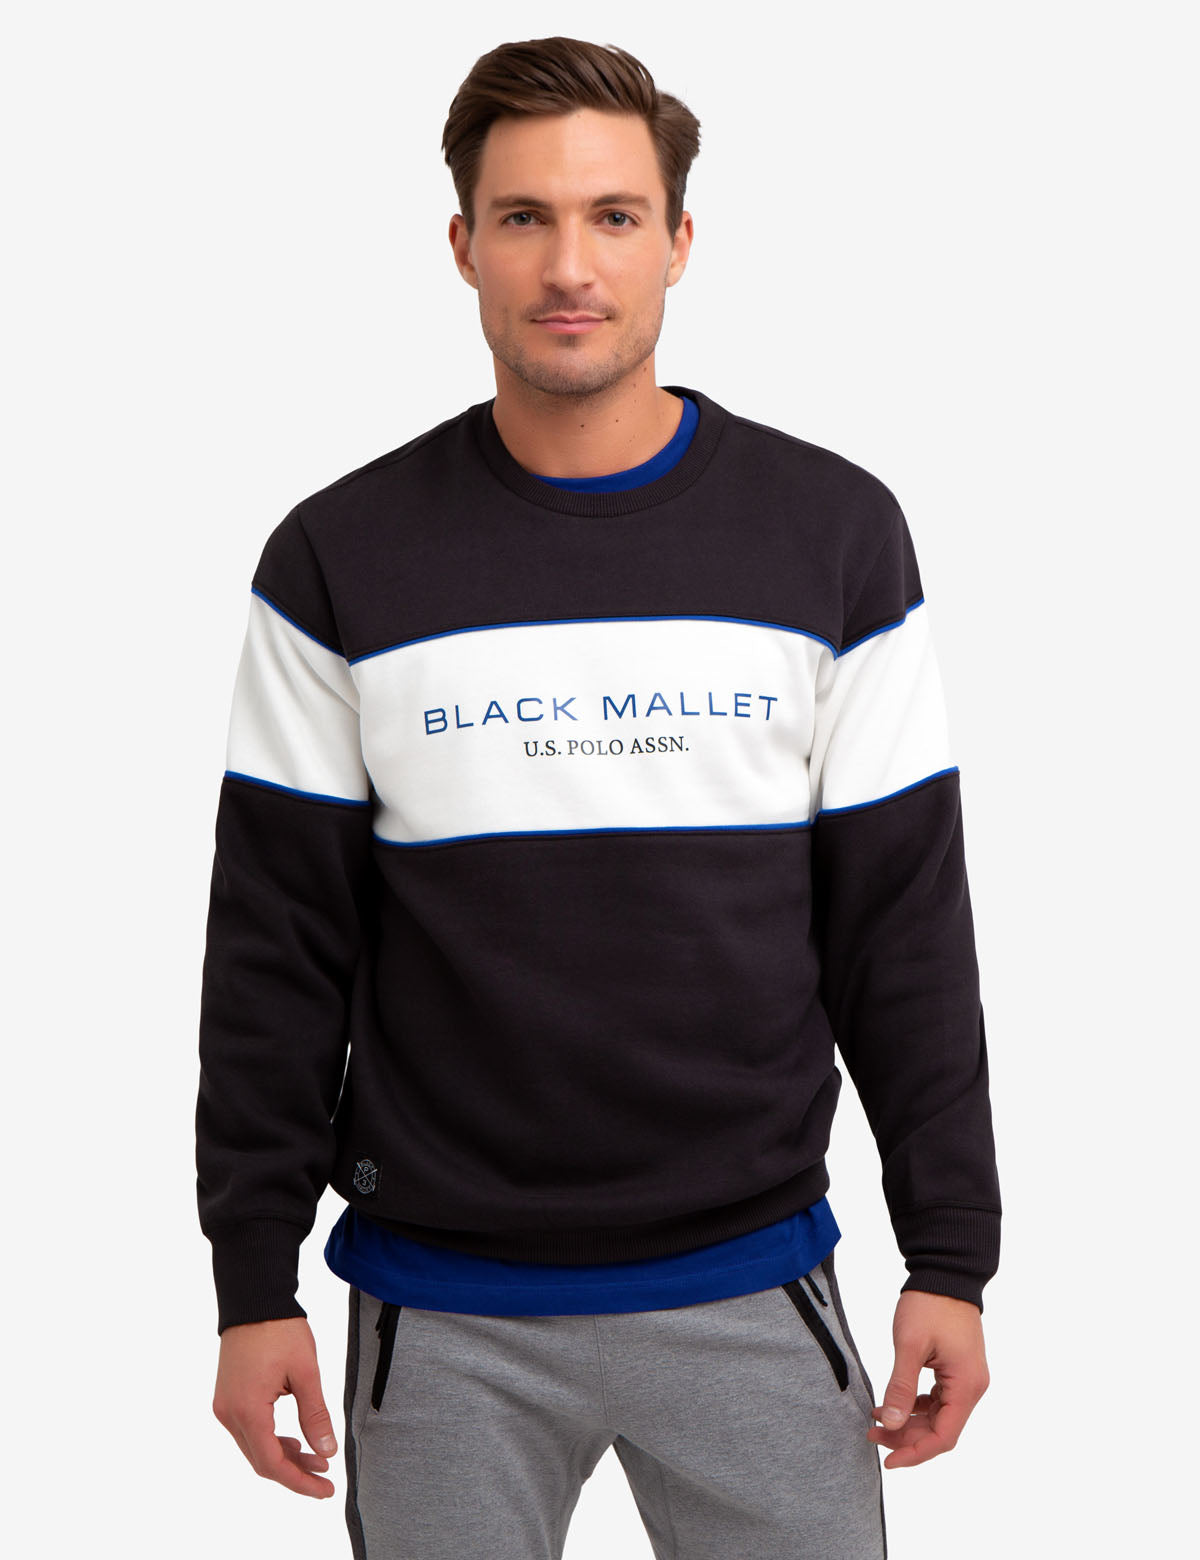 BLACK MALLET CREW NECK SWEATSHIRT